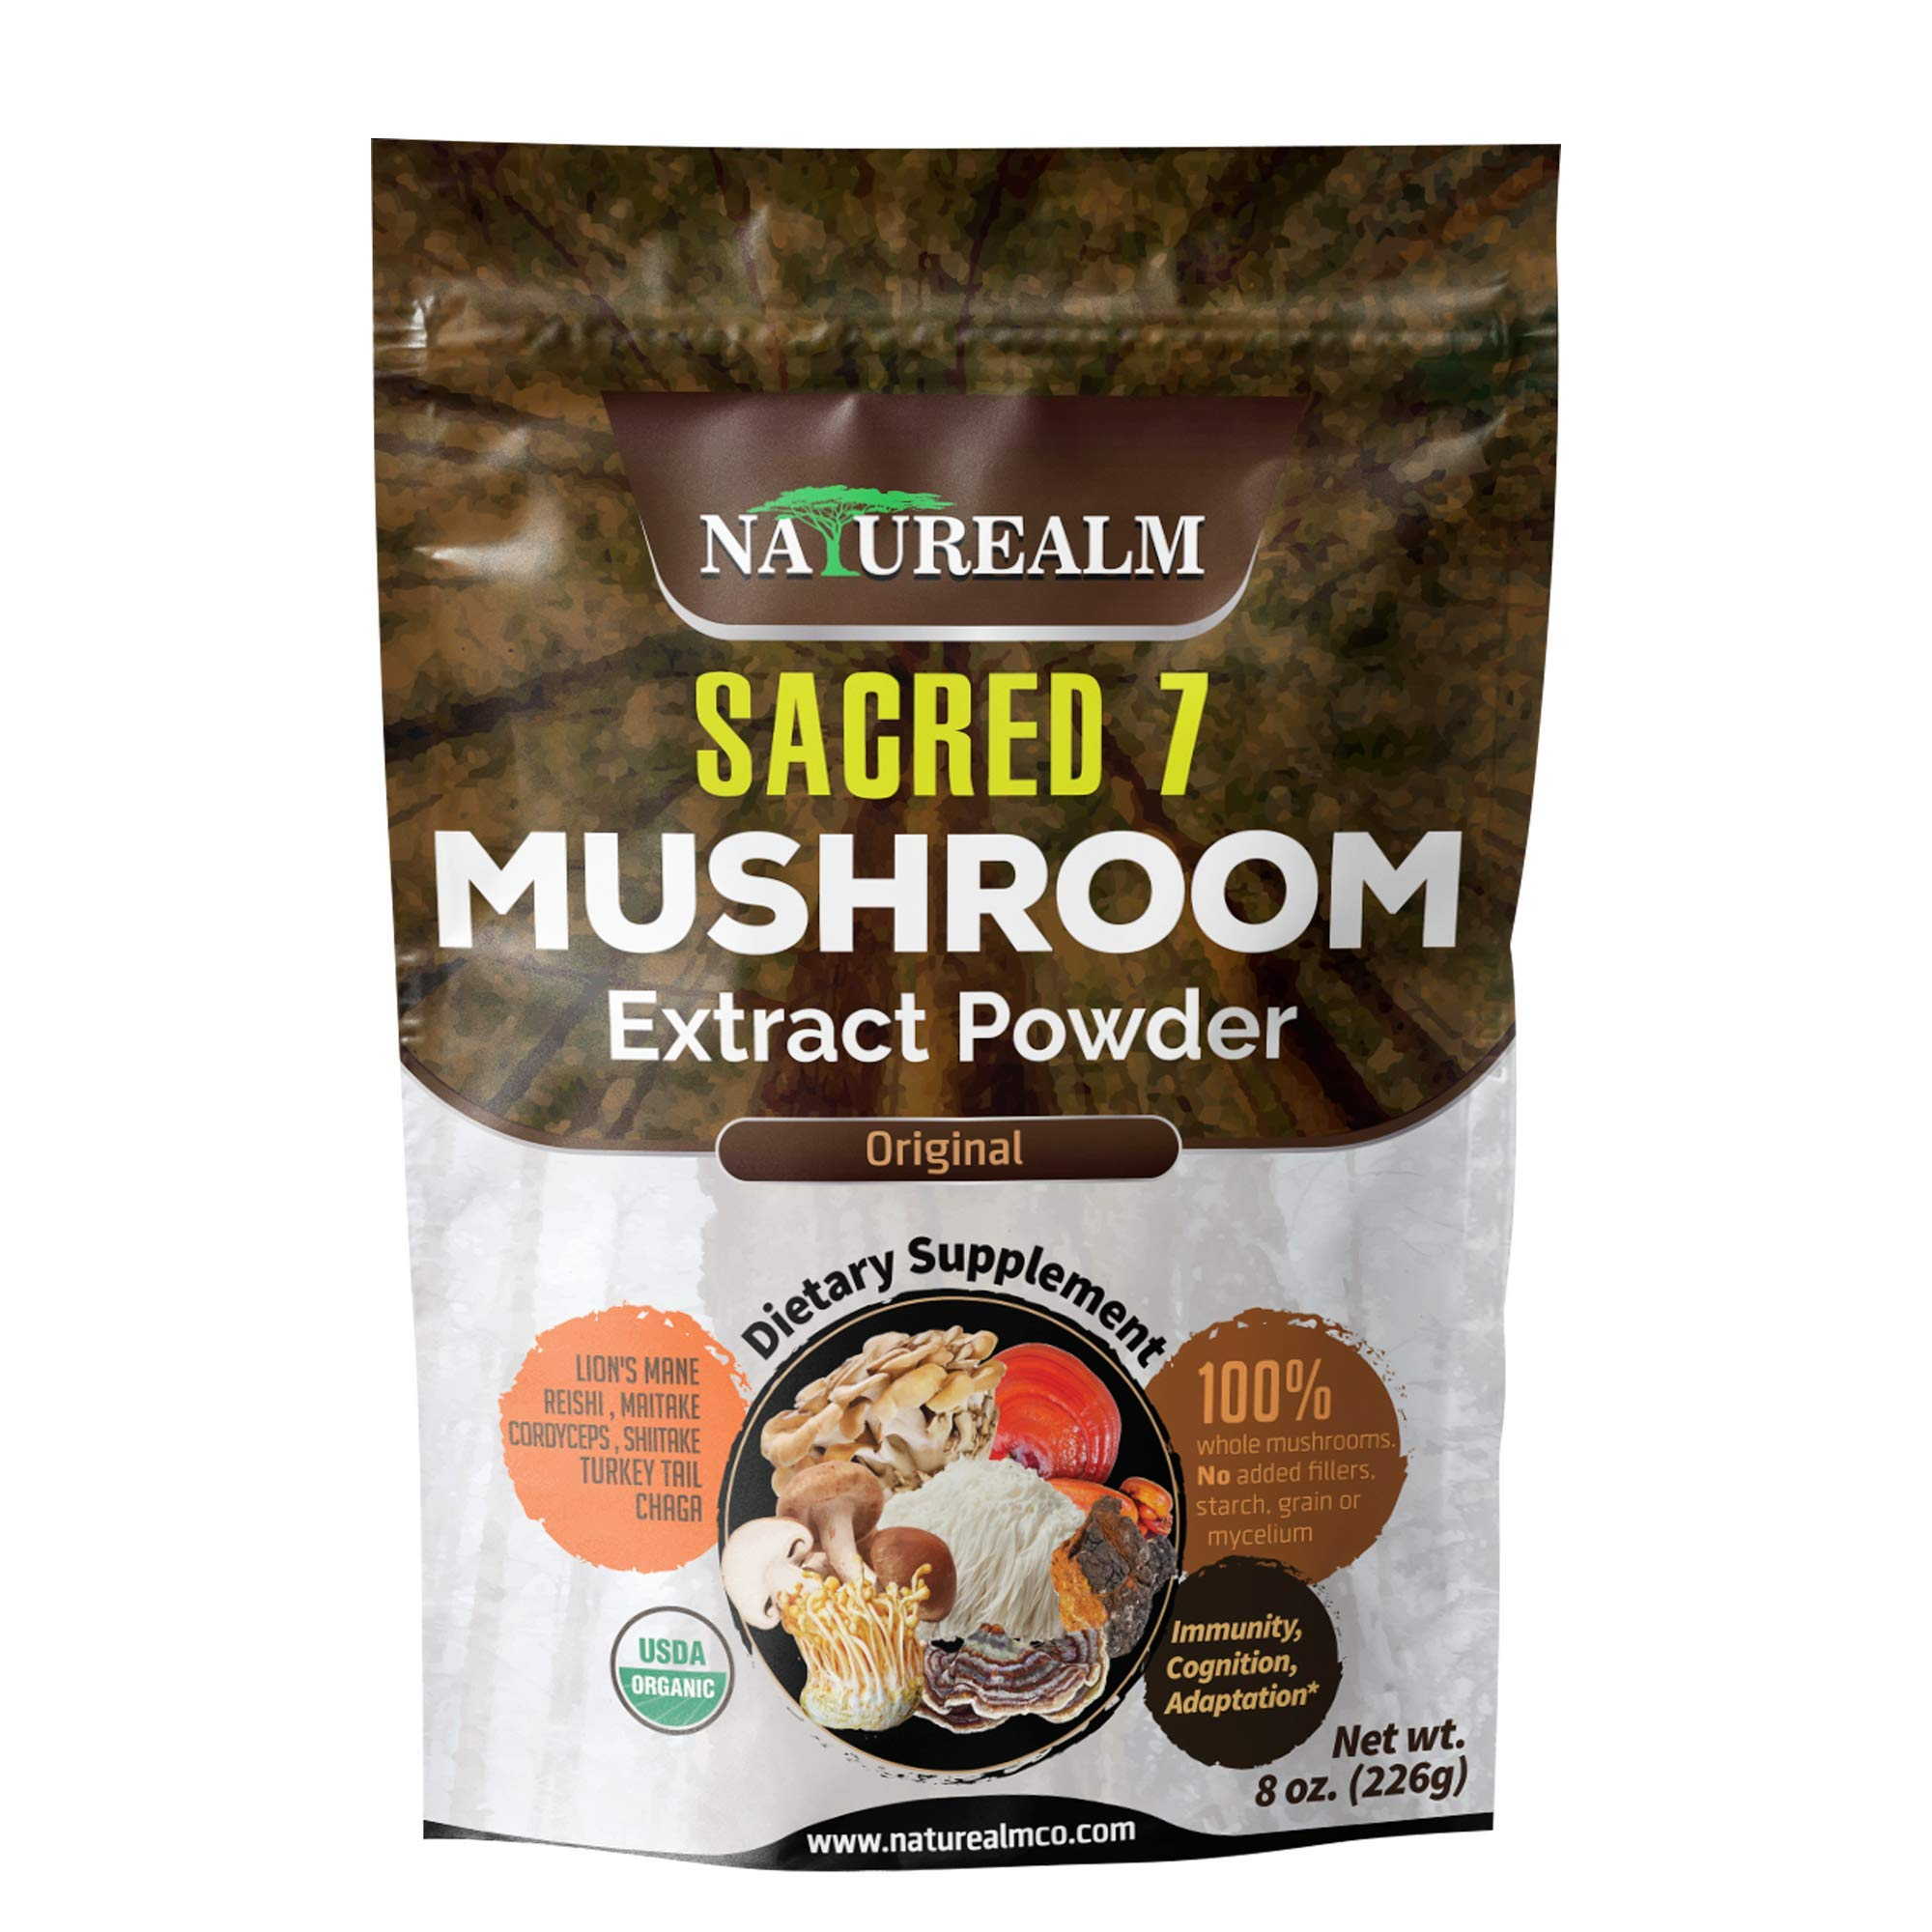 SACRED 7 Mushroom Extract Powder - USDA Organic - Lion's Mane, Reishi, Cordyceps, Maitake, Shiitake, Turkey Tail, Chaga - Immunity Supplement - Add to Coffee & Tea - Real Mushrooms - No fillers - 226g